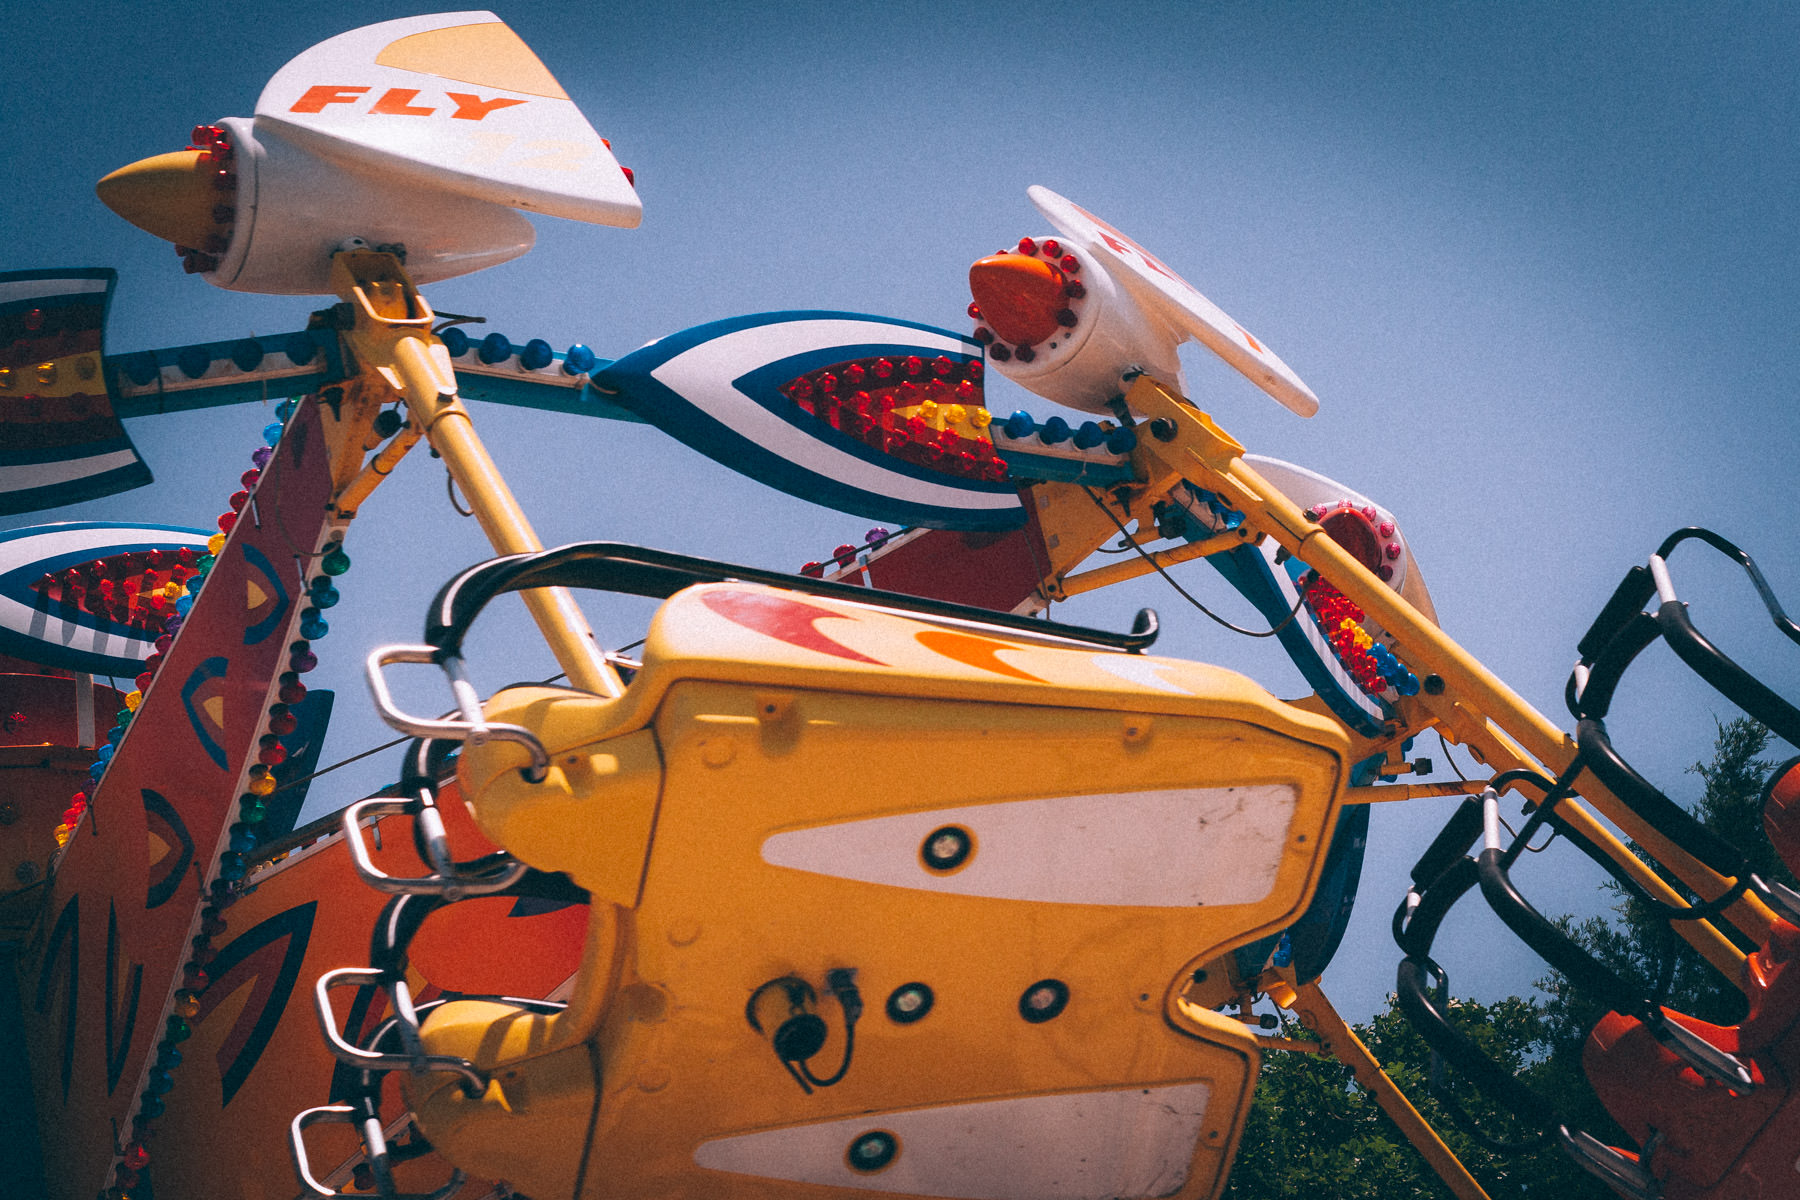 A thrill ride at an outdoor festival in Grapevine, Texas.